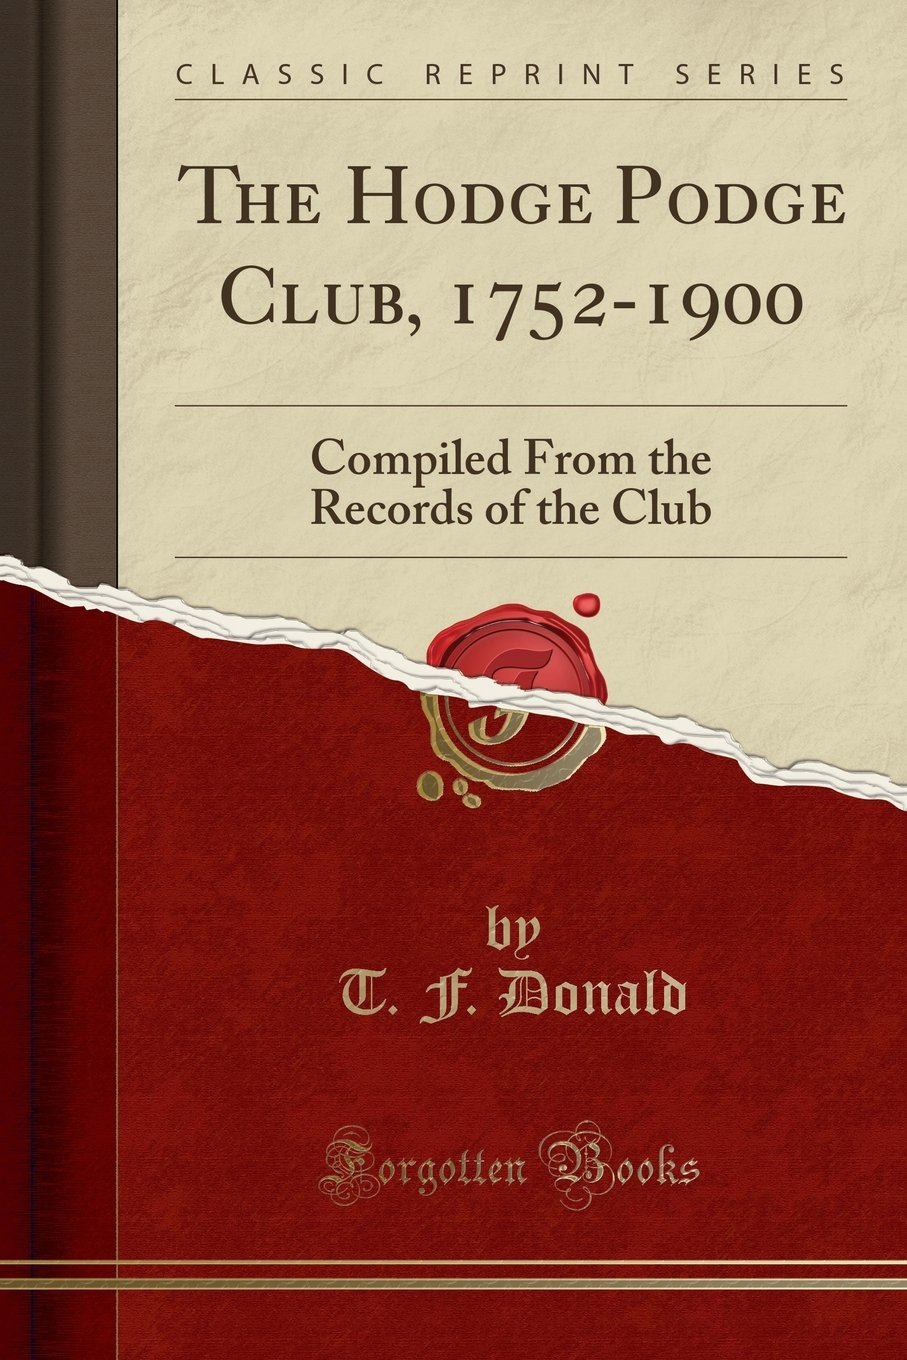 The Hodge Podge Club, 1752-1900: Compiled From the Records of the Club (Classic Reprint) PDF